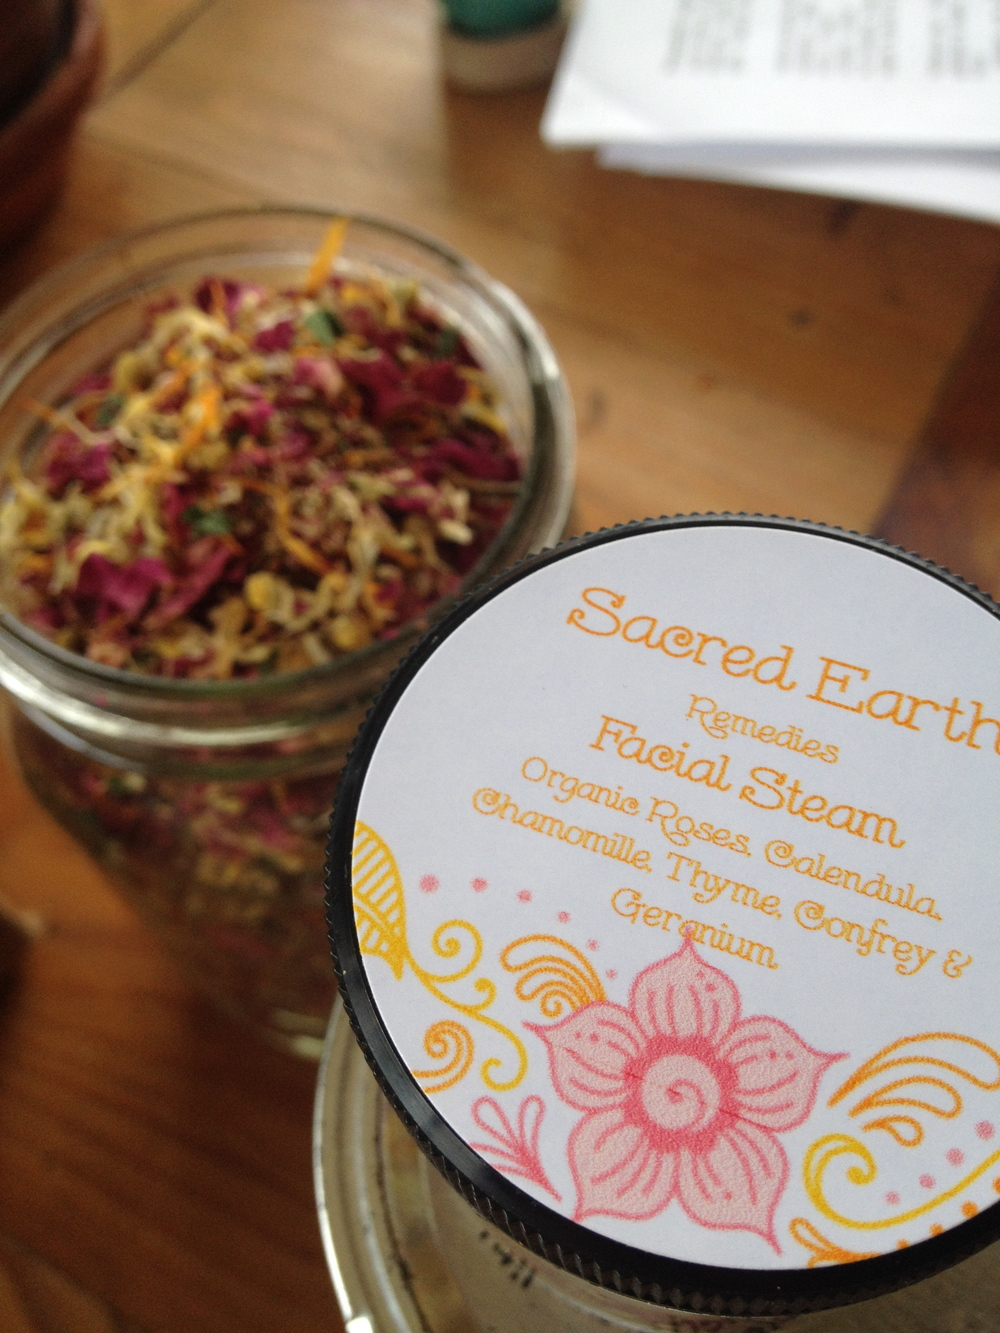 Facial Steam. Made with roses, thyme, calendula, chamomile. As simple as that!